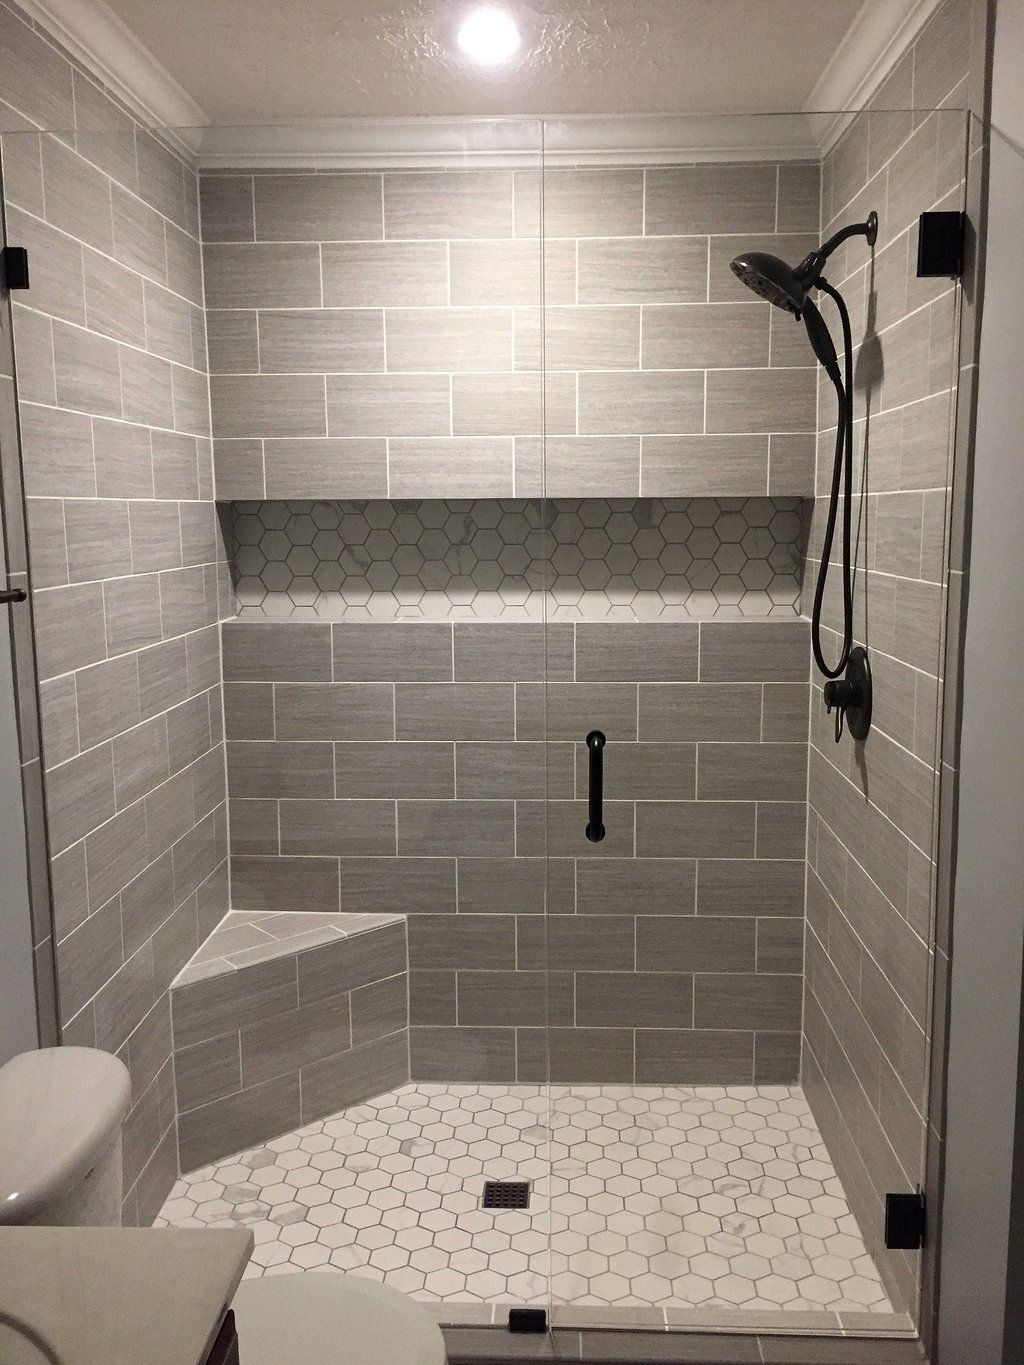 Master Bathroom Walk In Shower Ideas Https Www Mobmasker Com Master Bathroom Walk In Shower Ideas Bathrooms Remodel Small Bathroom Remodel Small Bathroom